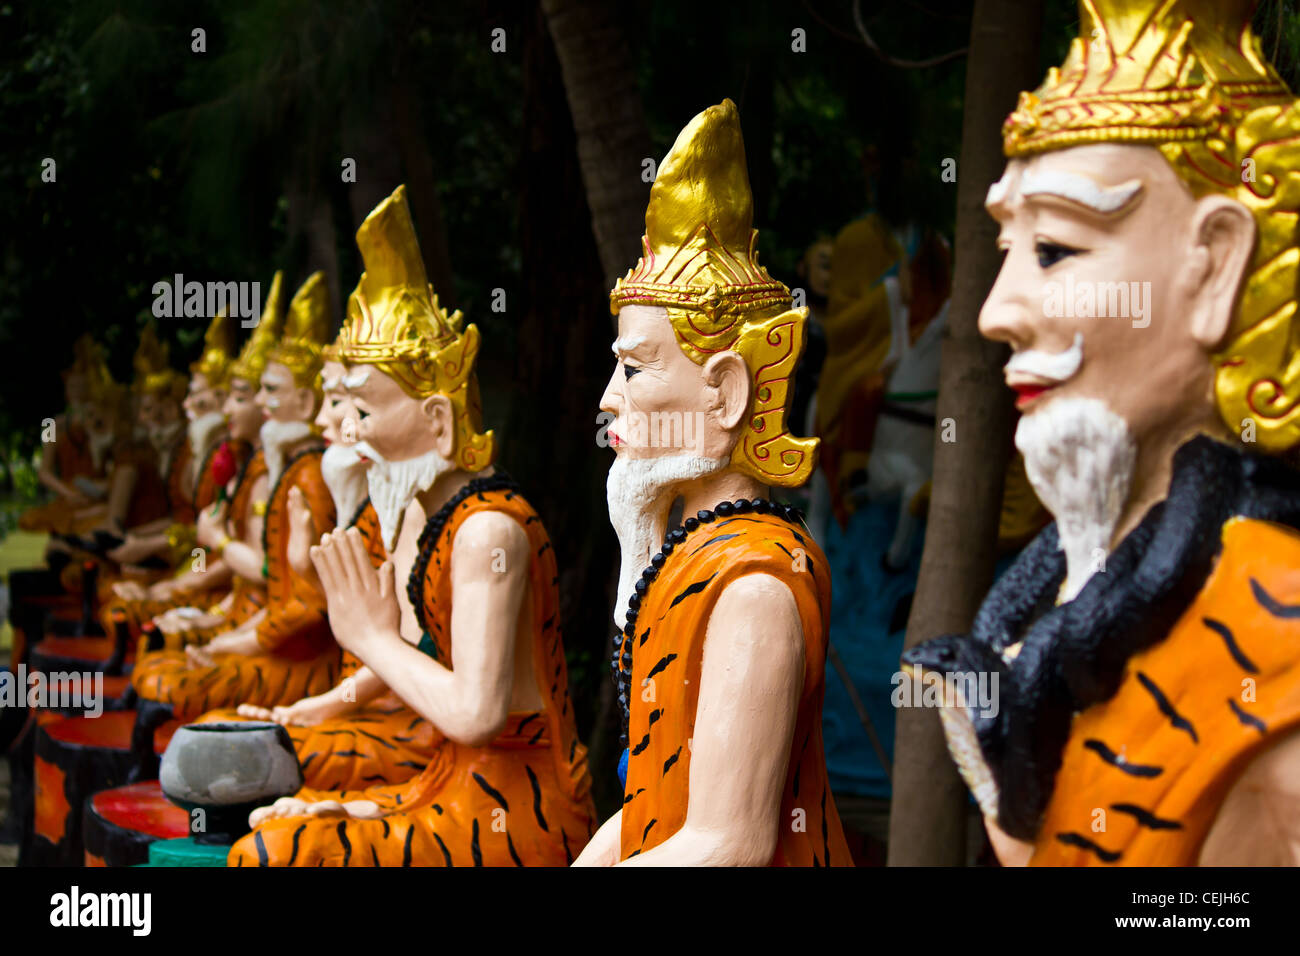 Ascetic statue in Thai style molding art - Stock Image